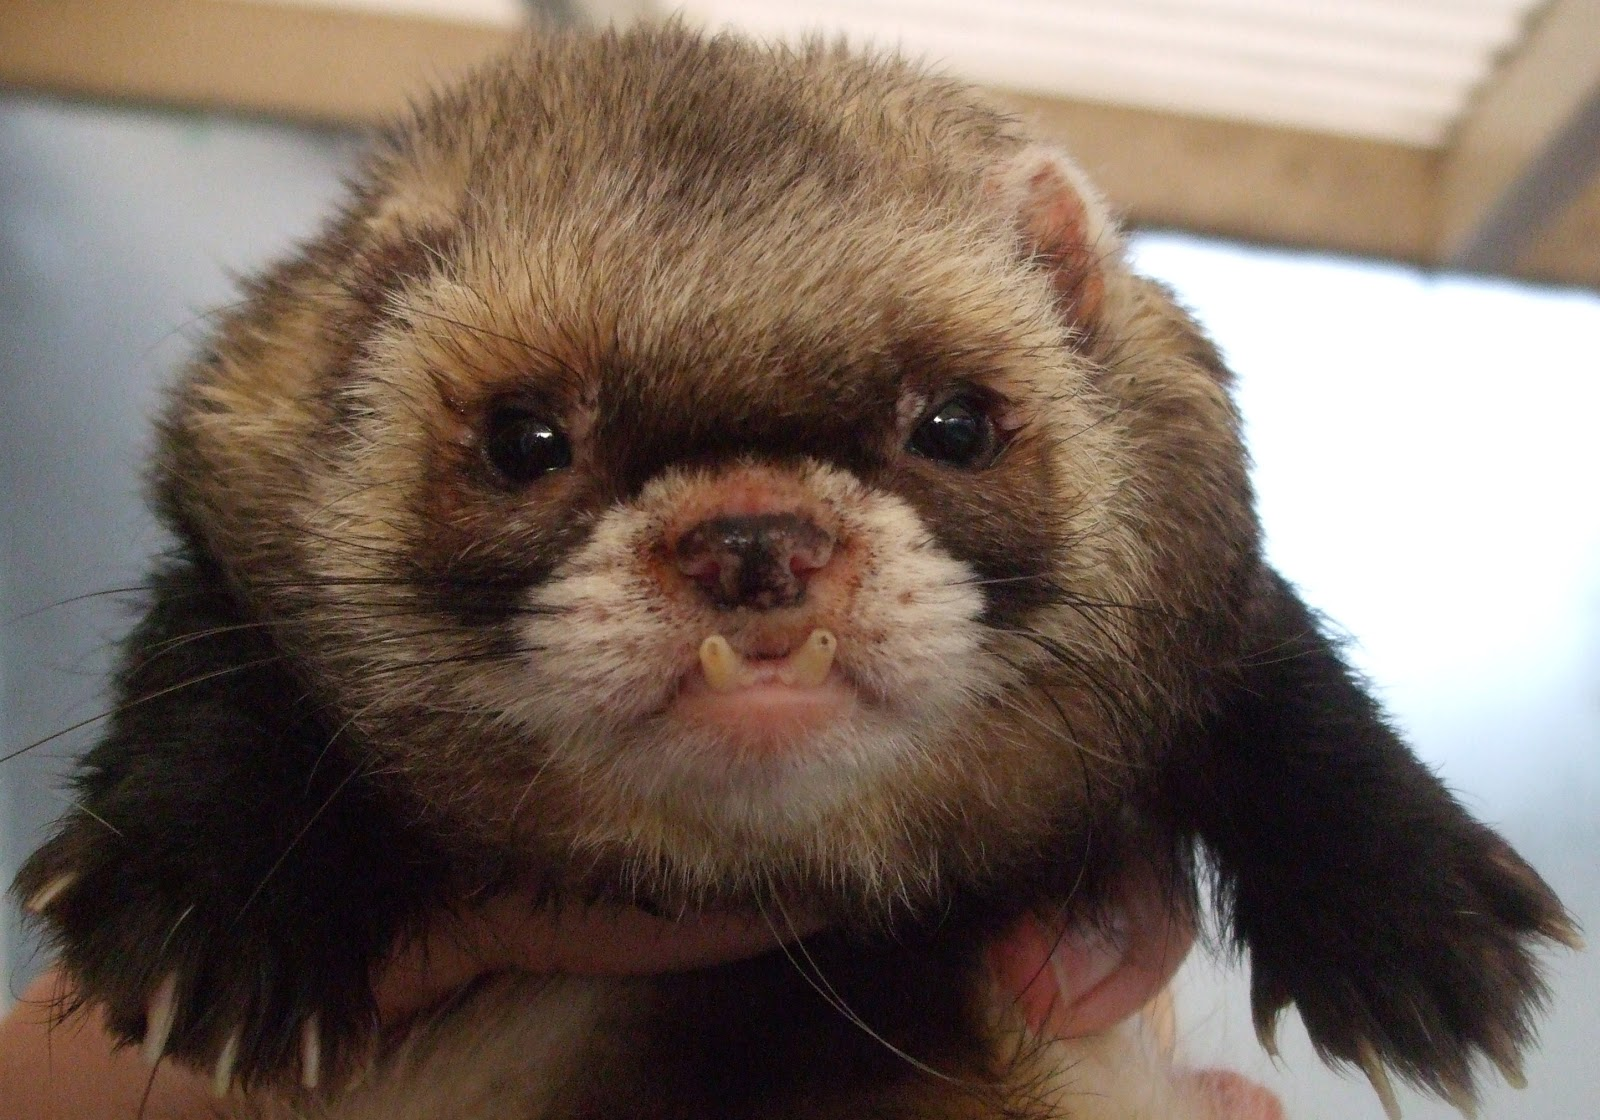 ferret face wallpaper background - photo #20